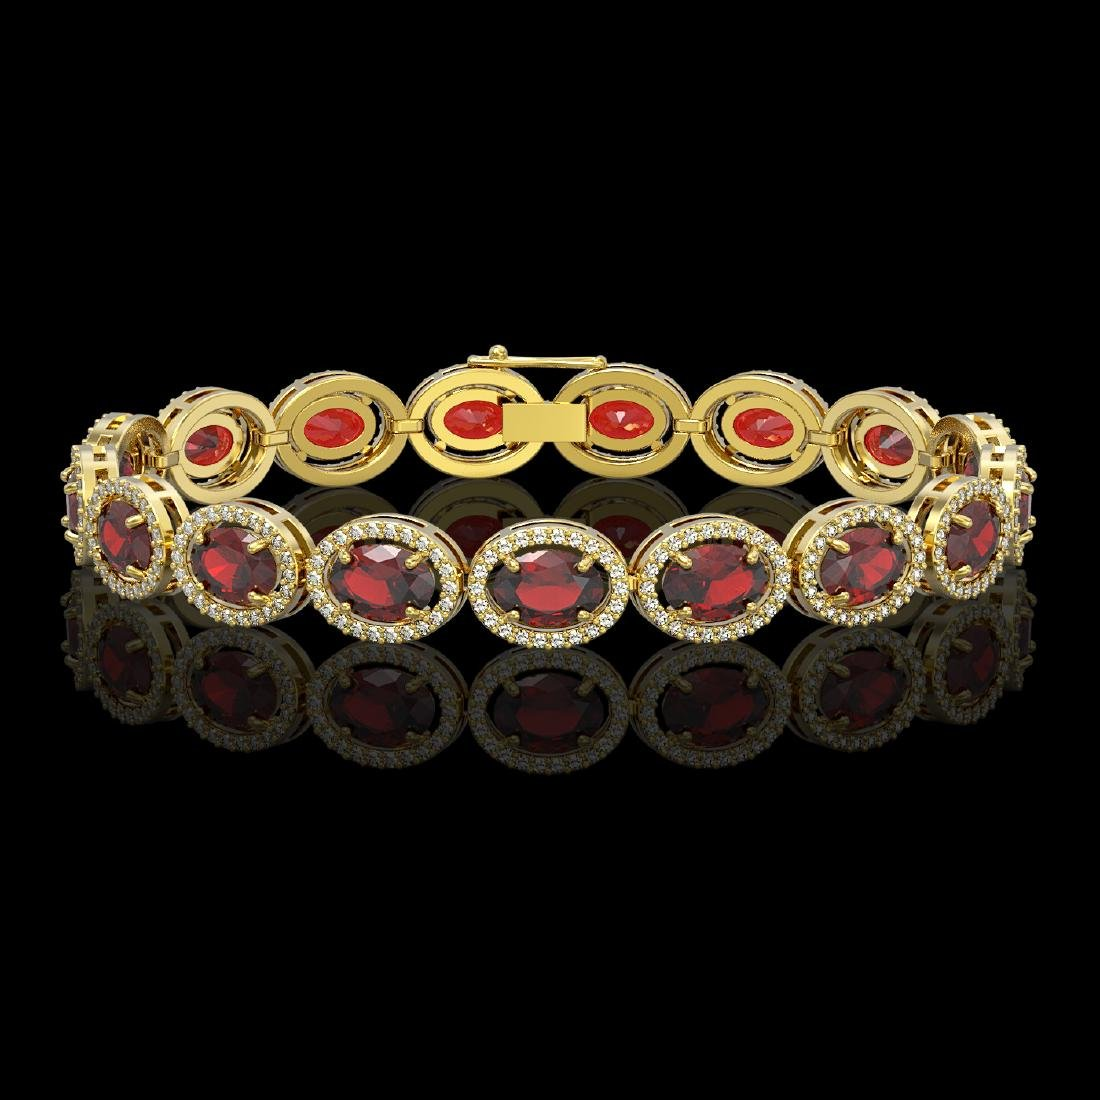 21.98 CTW Garnet & Diamond Halo Bracelet 10K Yellow